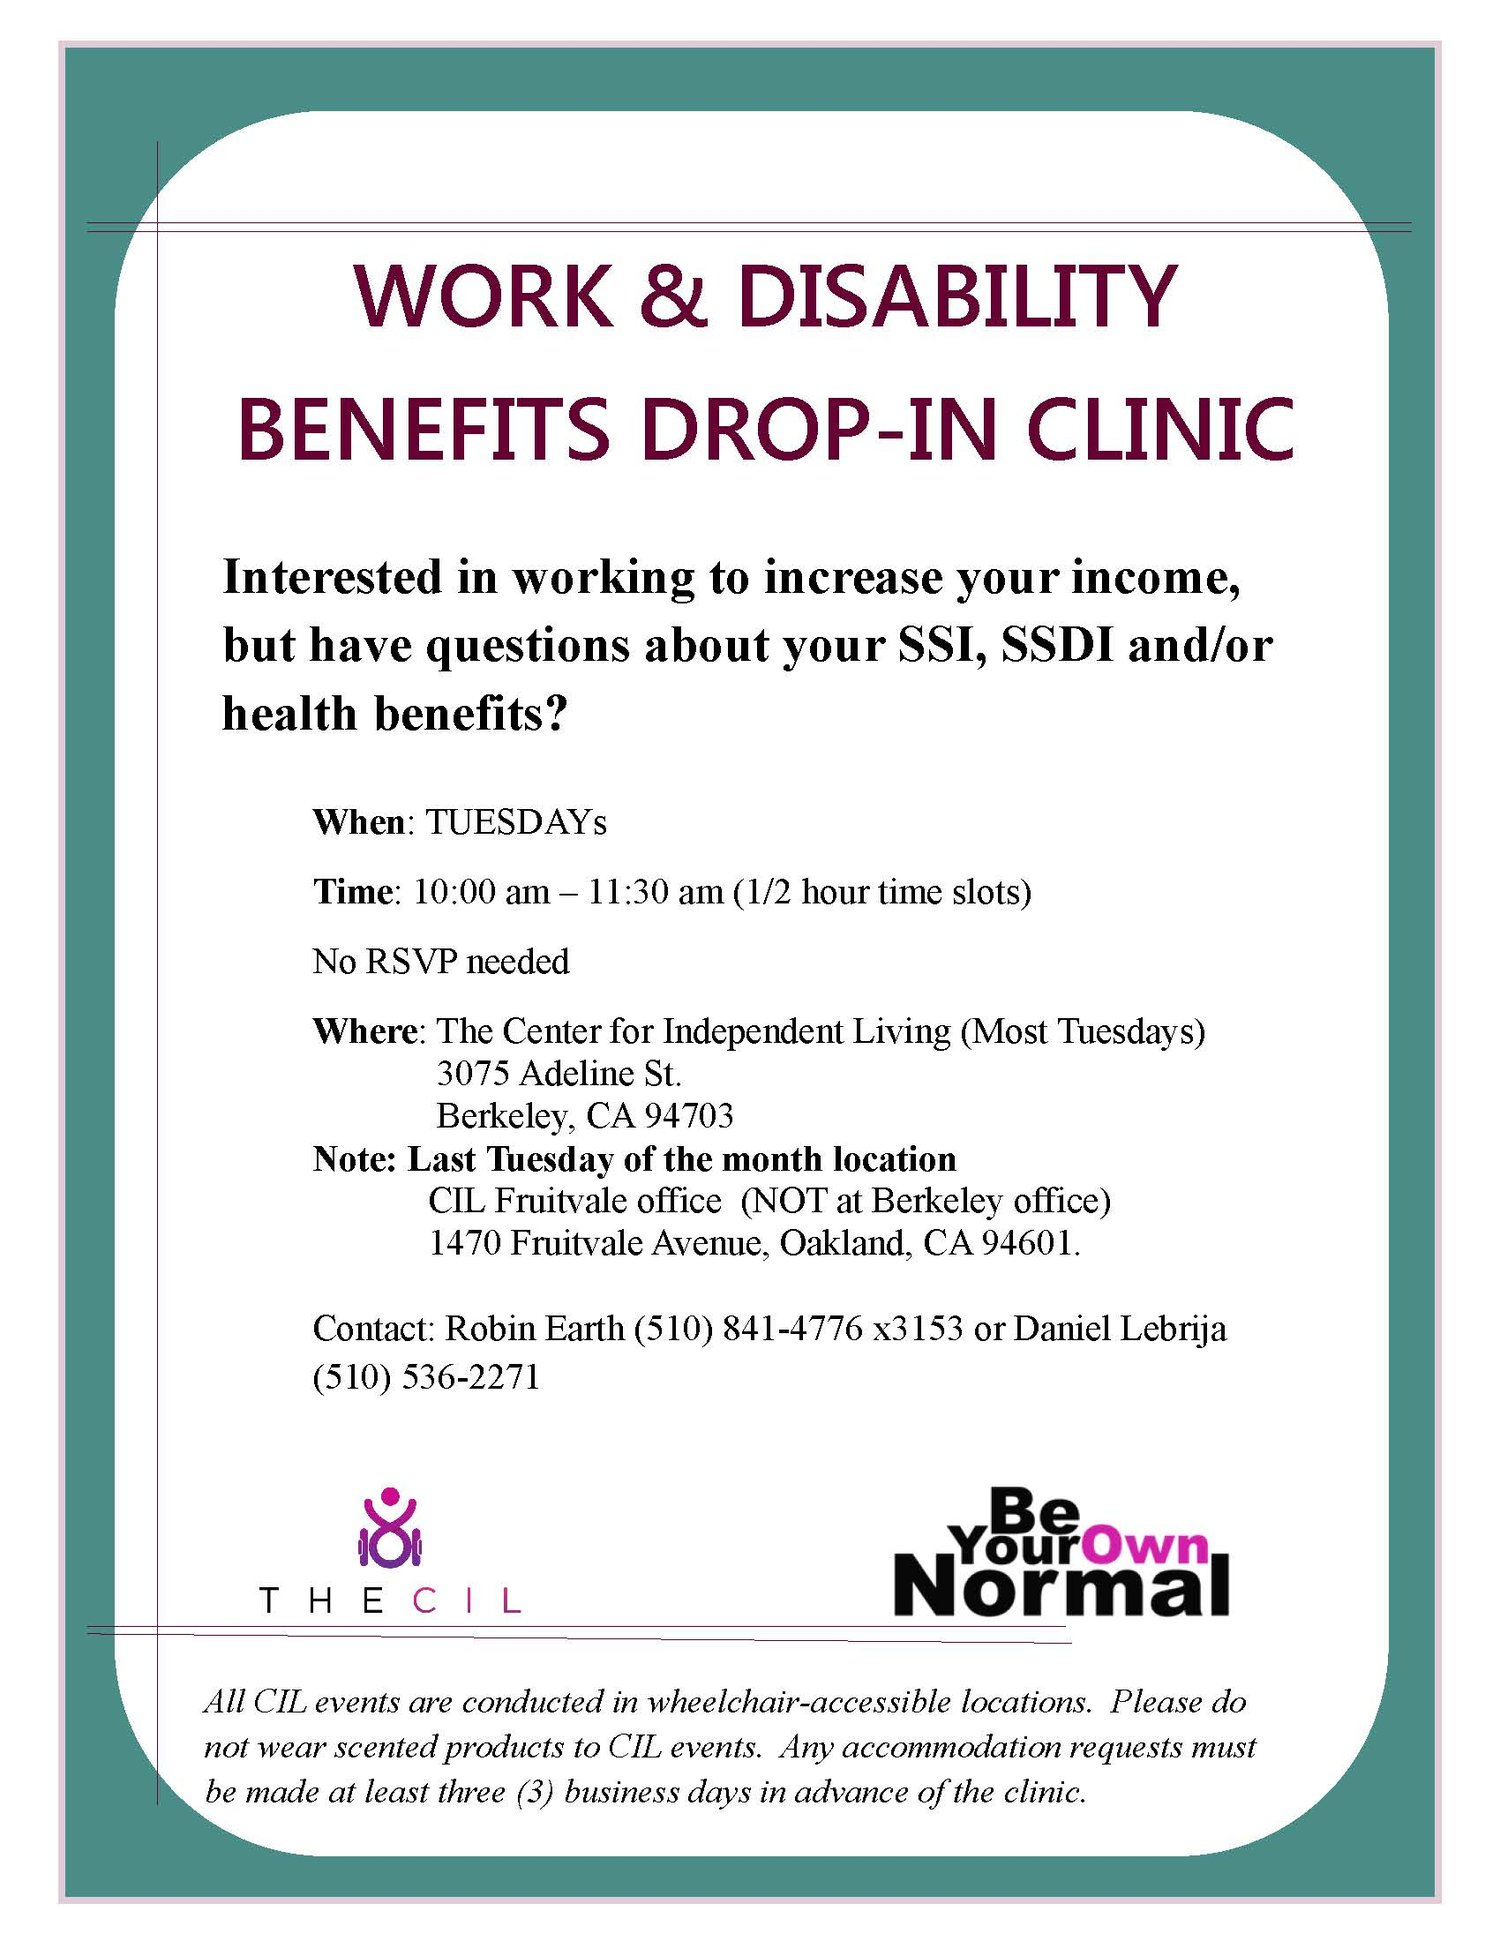 Work and Disability Benefits Drop-In Clinic — The CIL